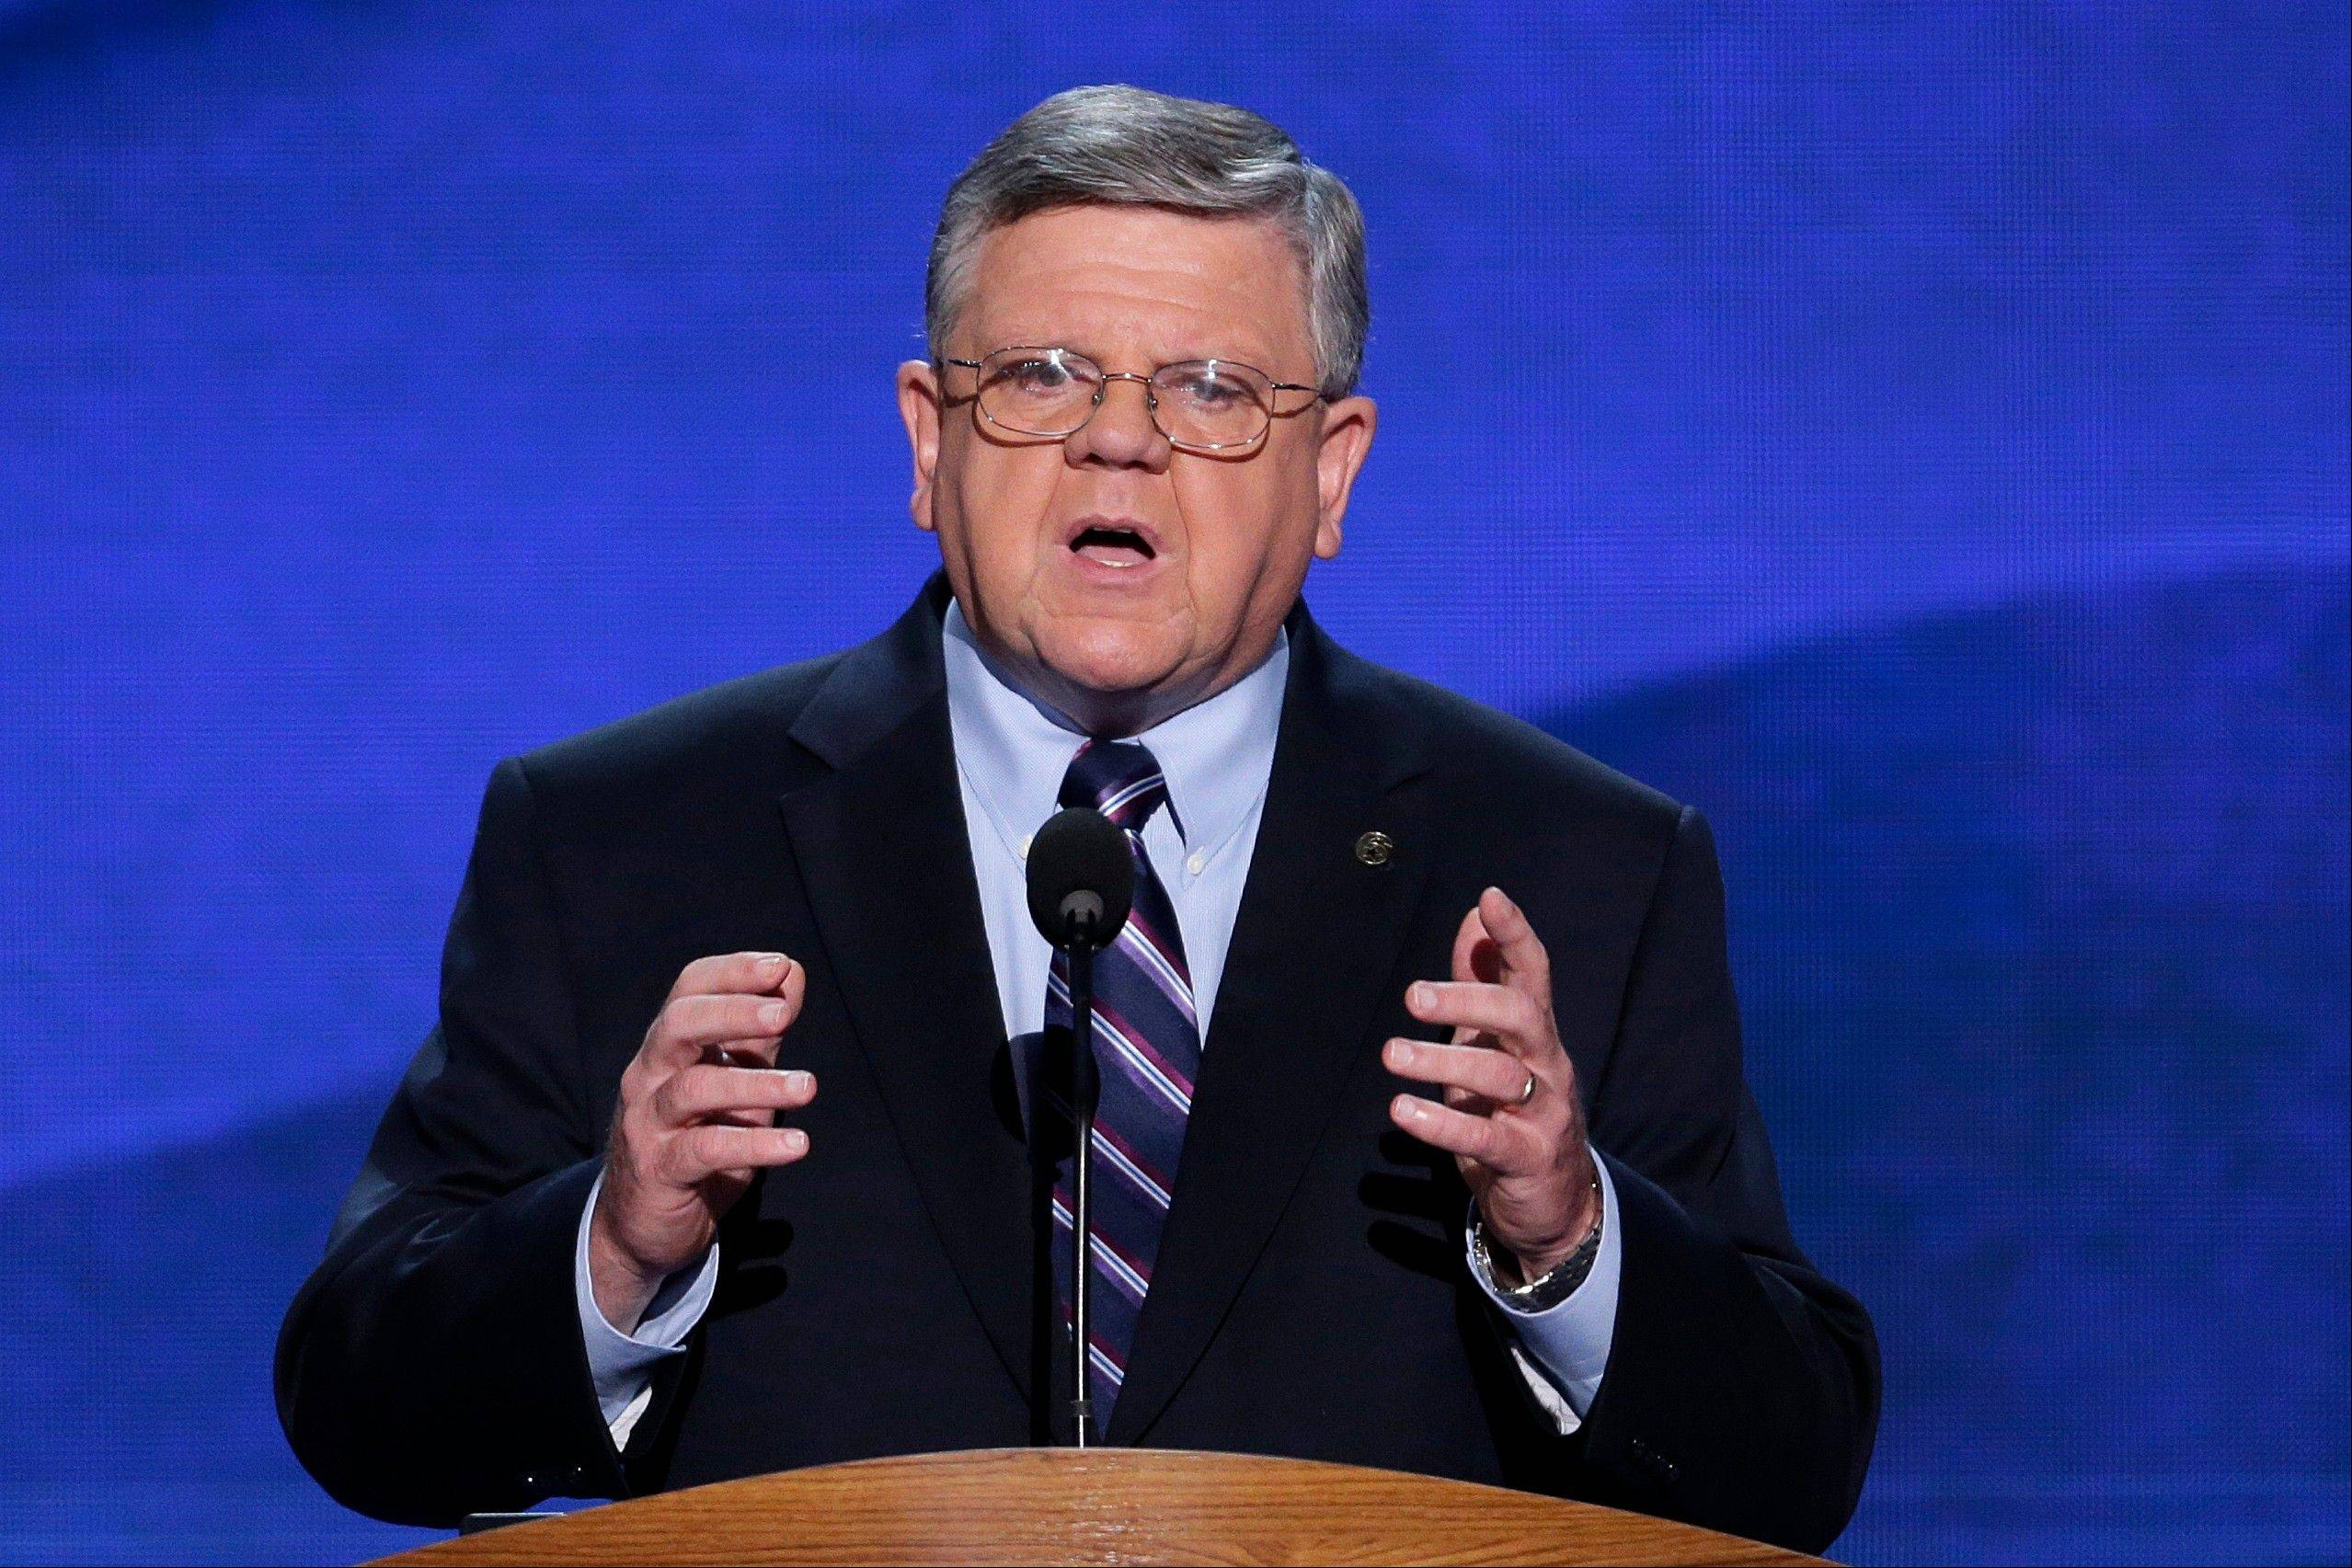 Veteran Ed Meagher addresses the Democratic National Convention in Charlotte, N.C., on Wednesday, Sept. 5, 2012.